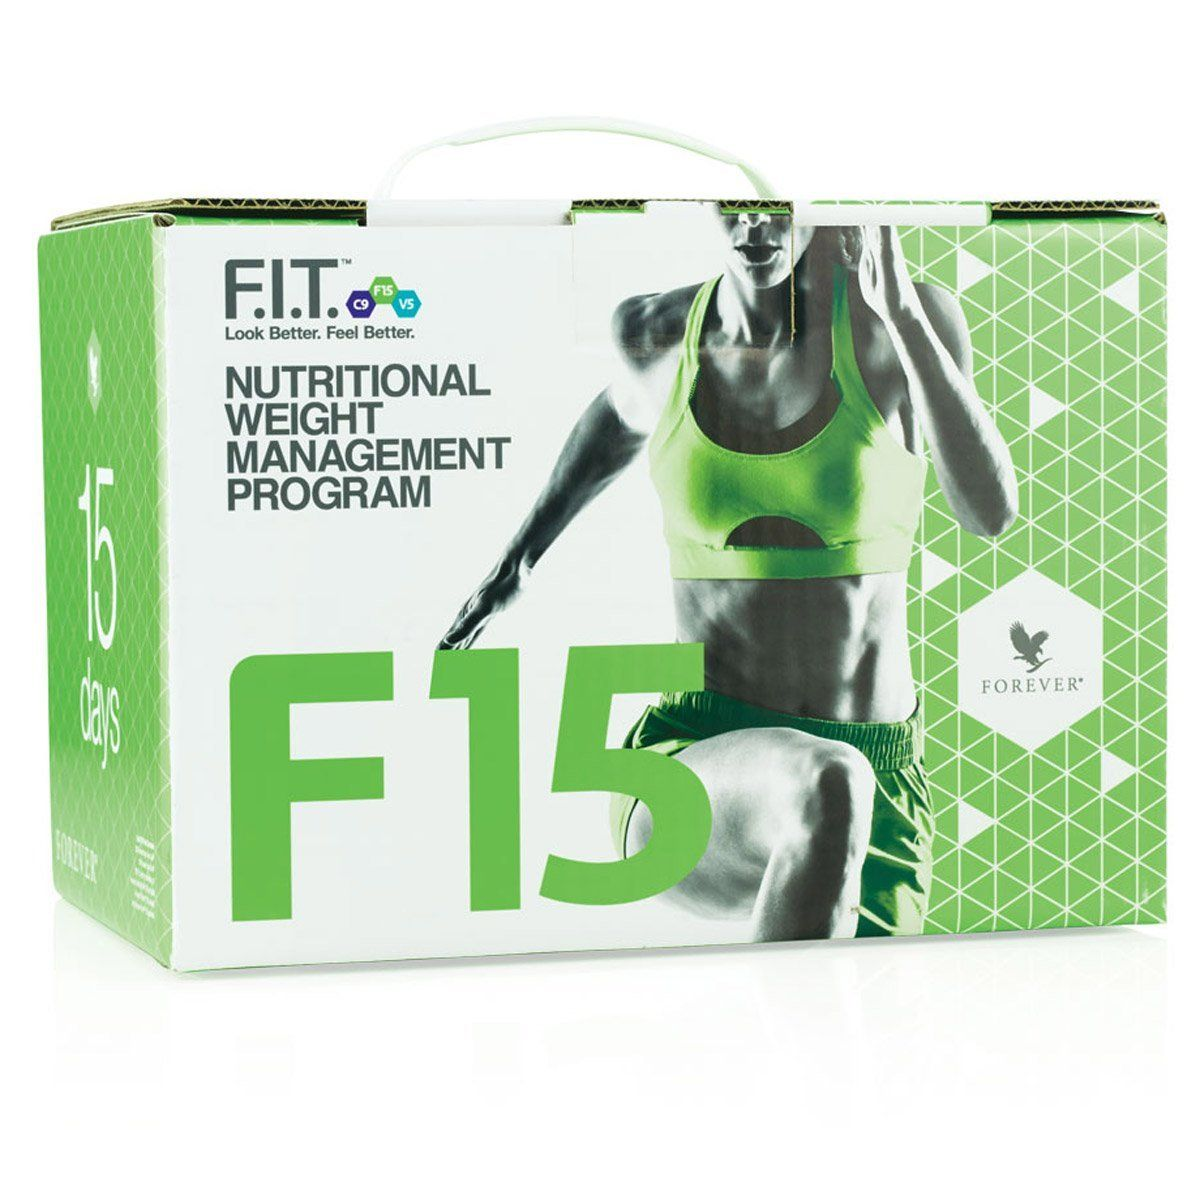 Fit 15 Intermediar Vanilie